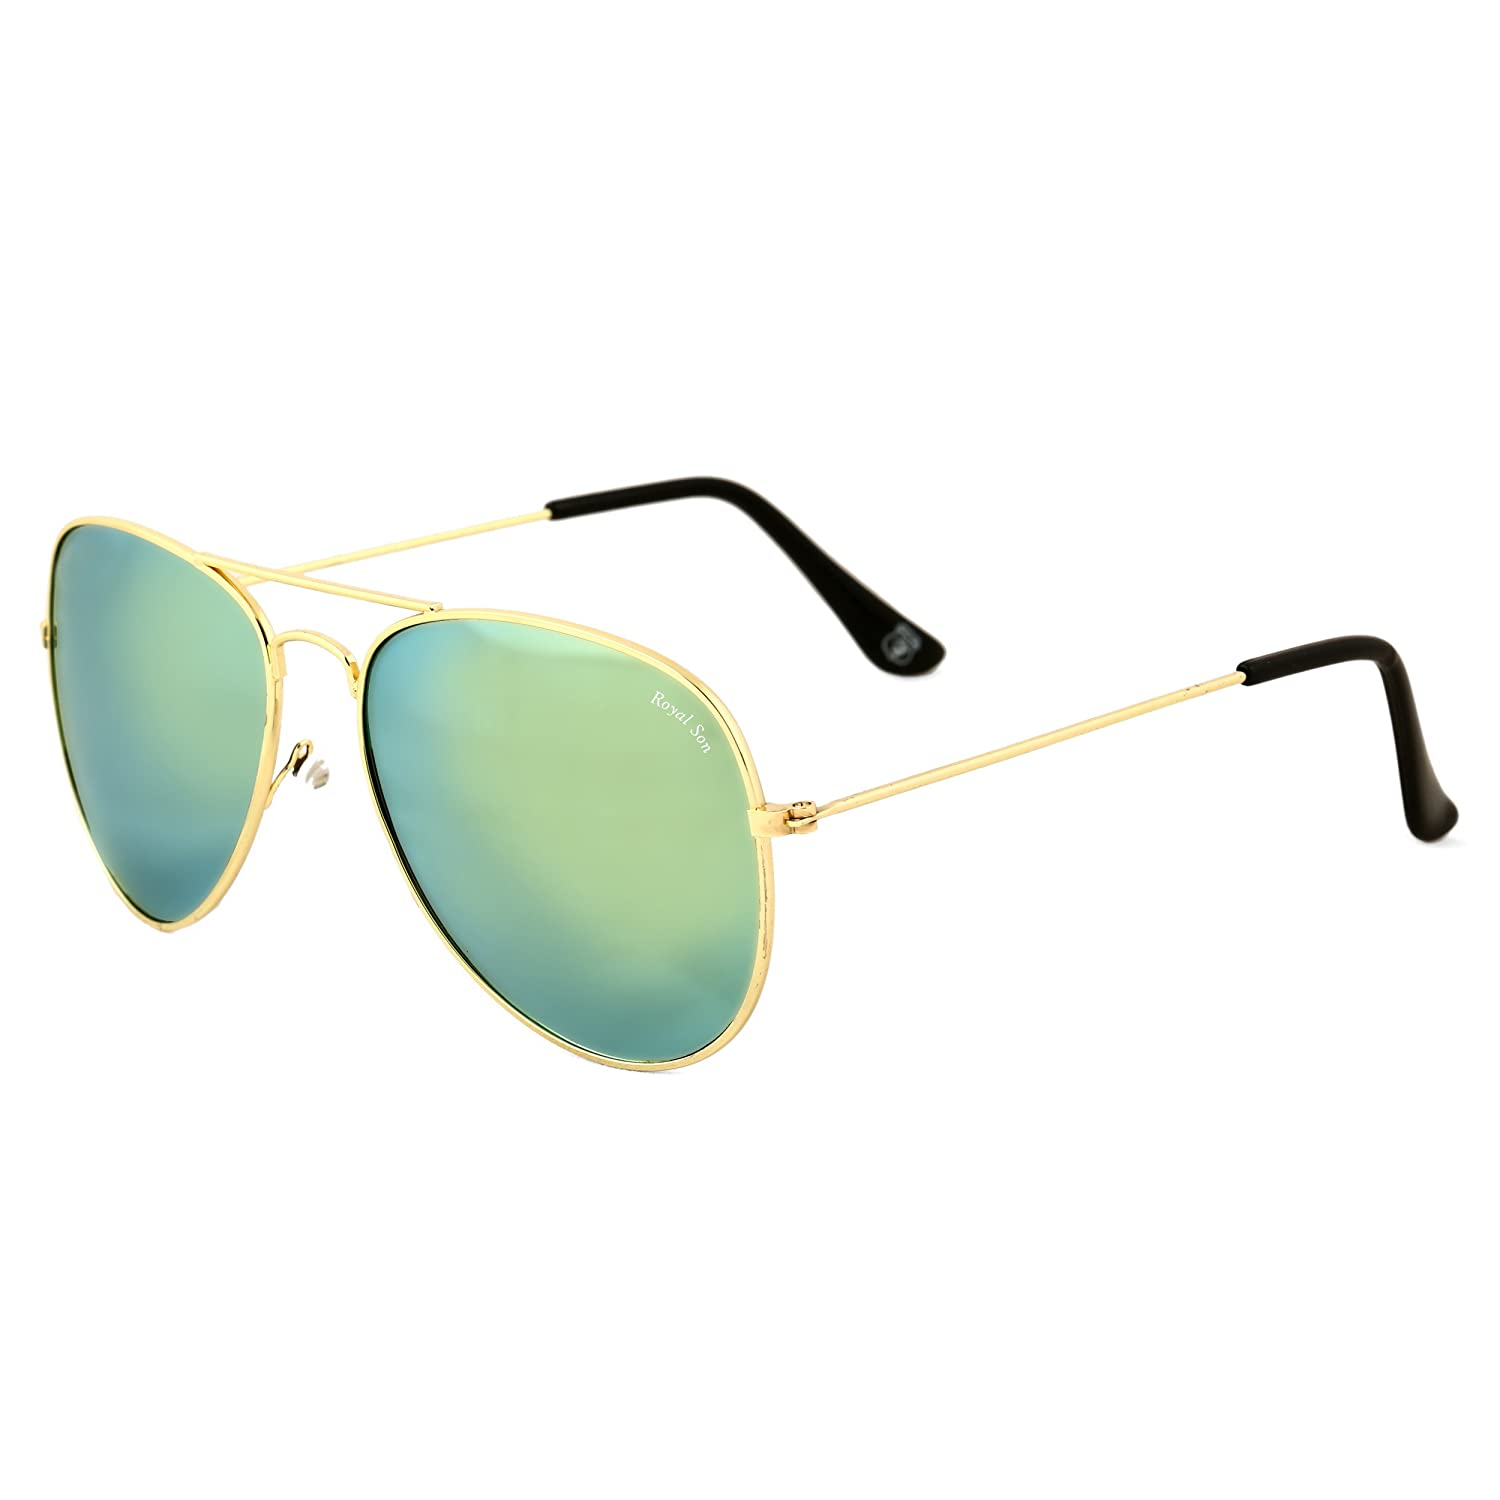 Upto 40% Off + Extra 10% Off On Sunglasses By Amazon | Royal Son UV Protected Aviator Unisex Sunglasses (WHAT0170|58|Green) @ Rs.296.65